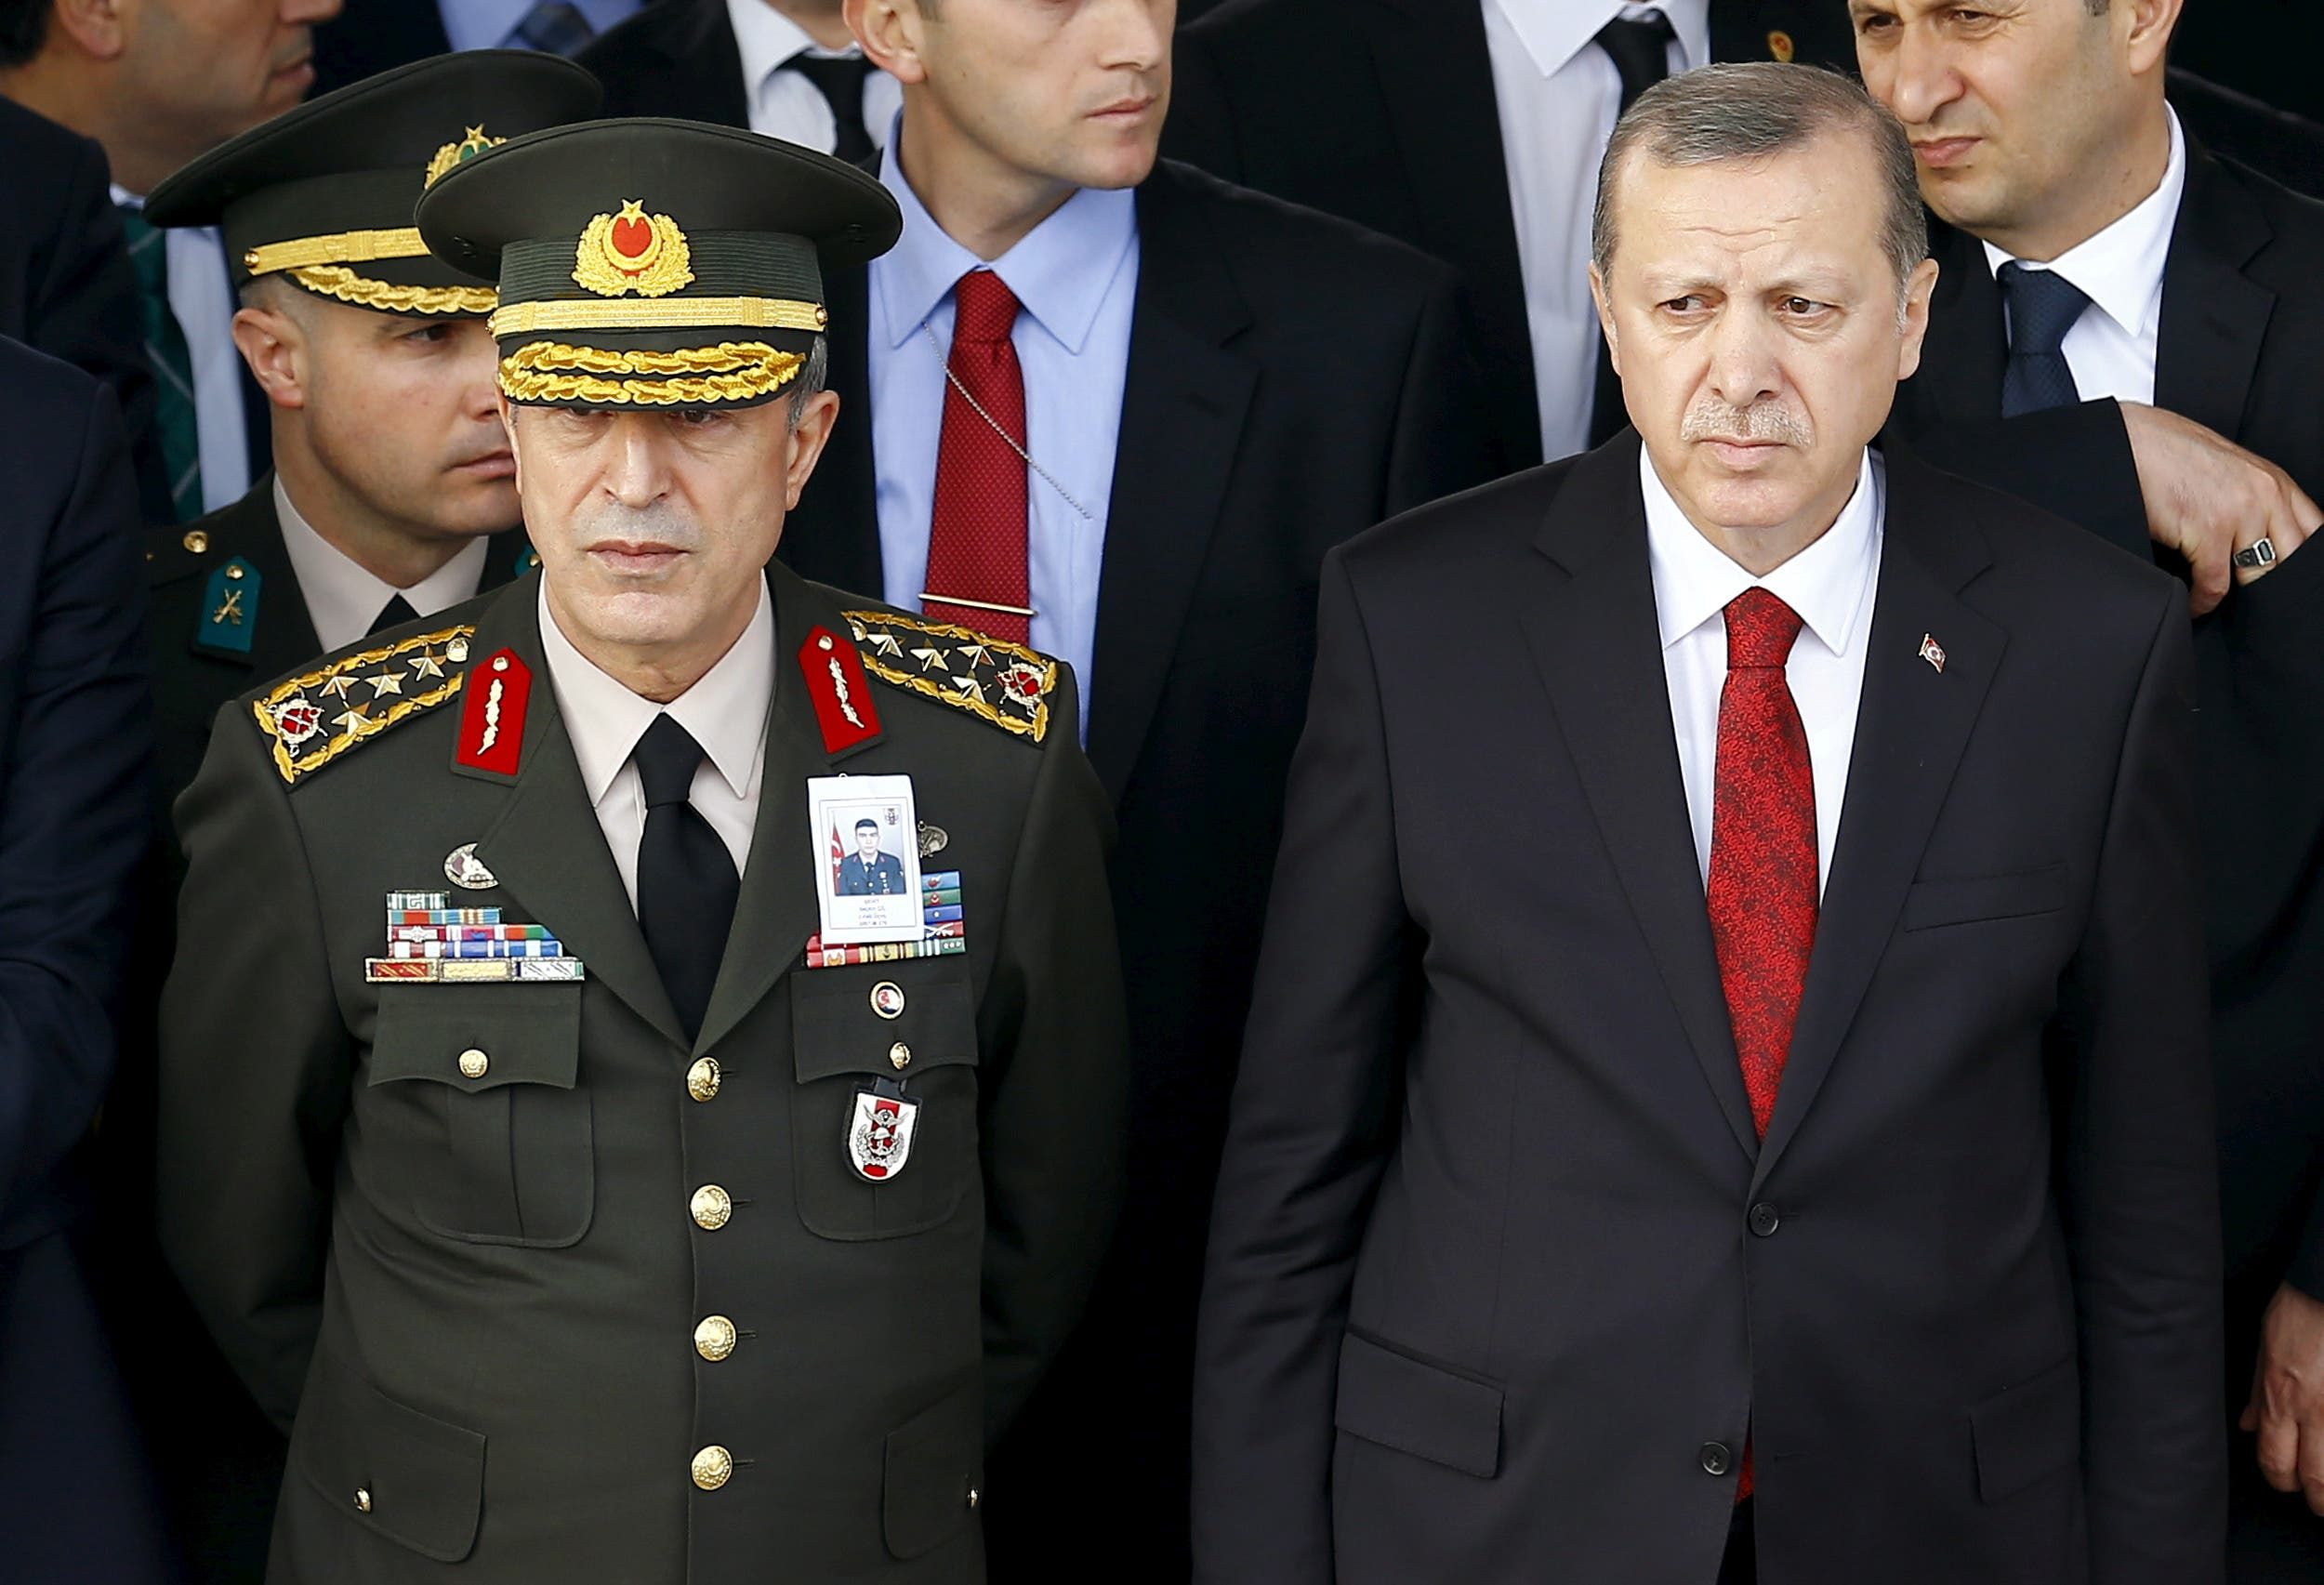 Turkish President Tayyip Erdogan (R) and Chief of Staff General Hulusi Akar attend a funeral ceremony for Army officer Seckin Cil in Ankara, Turkey, February 18, 2016. (Reuters)